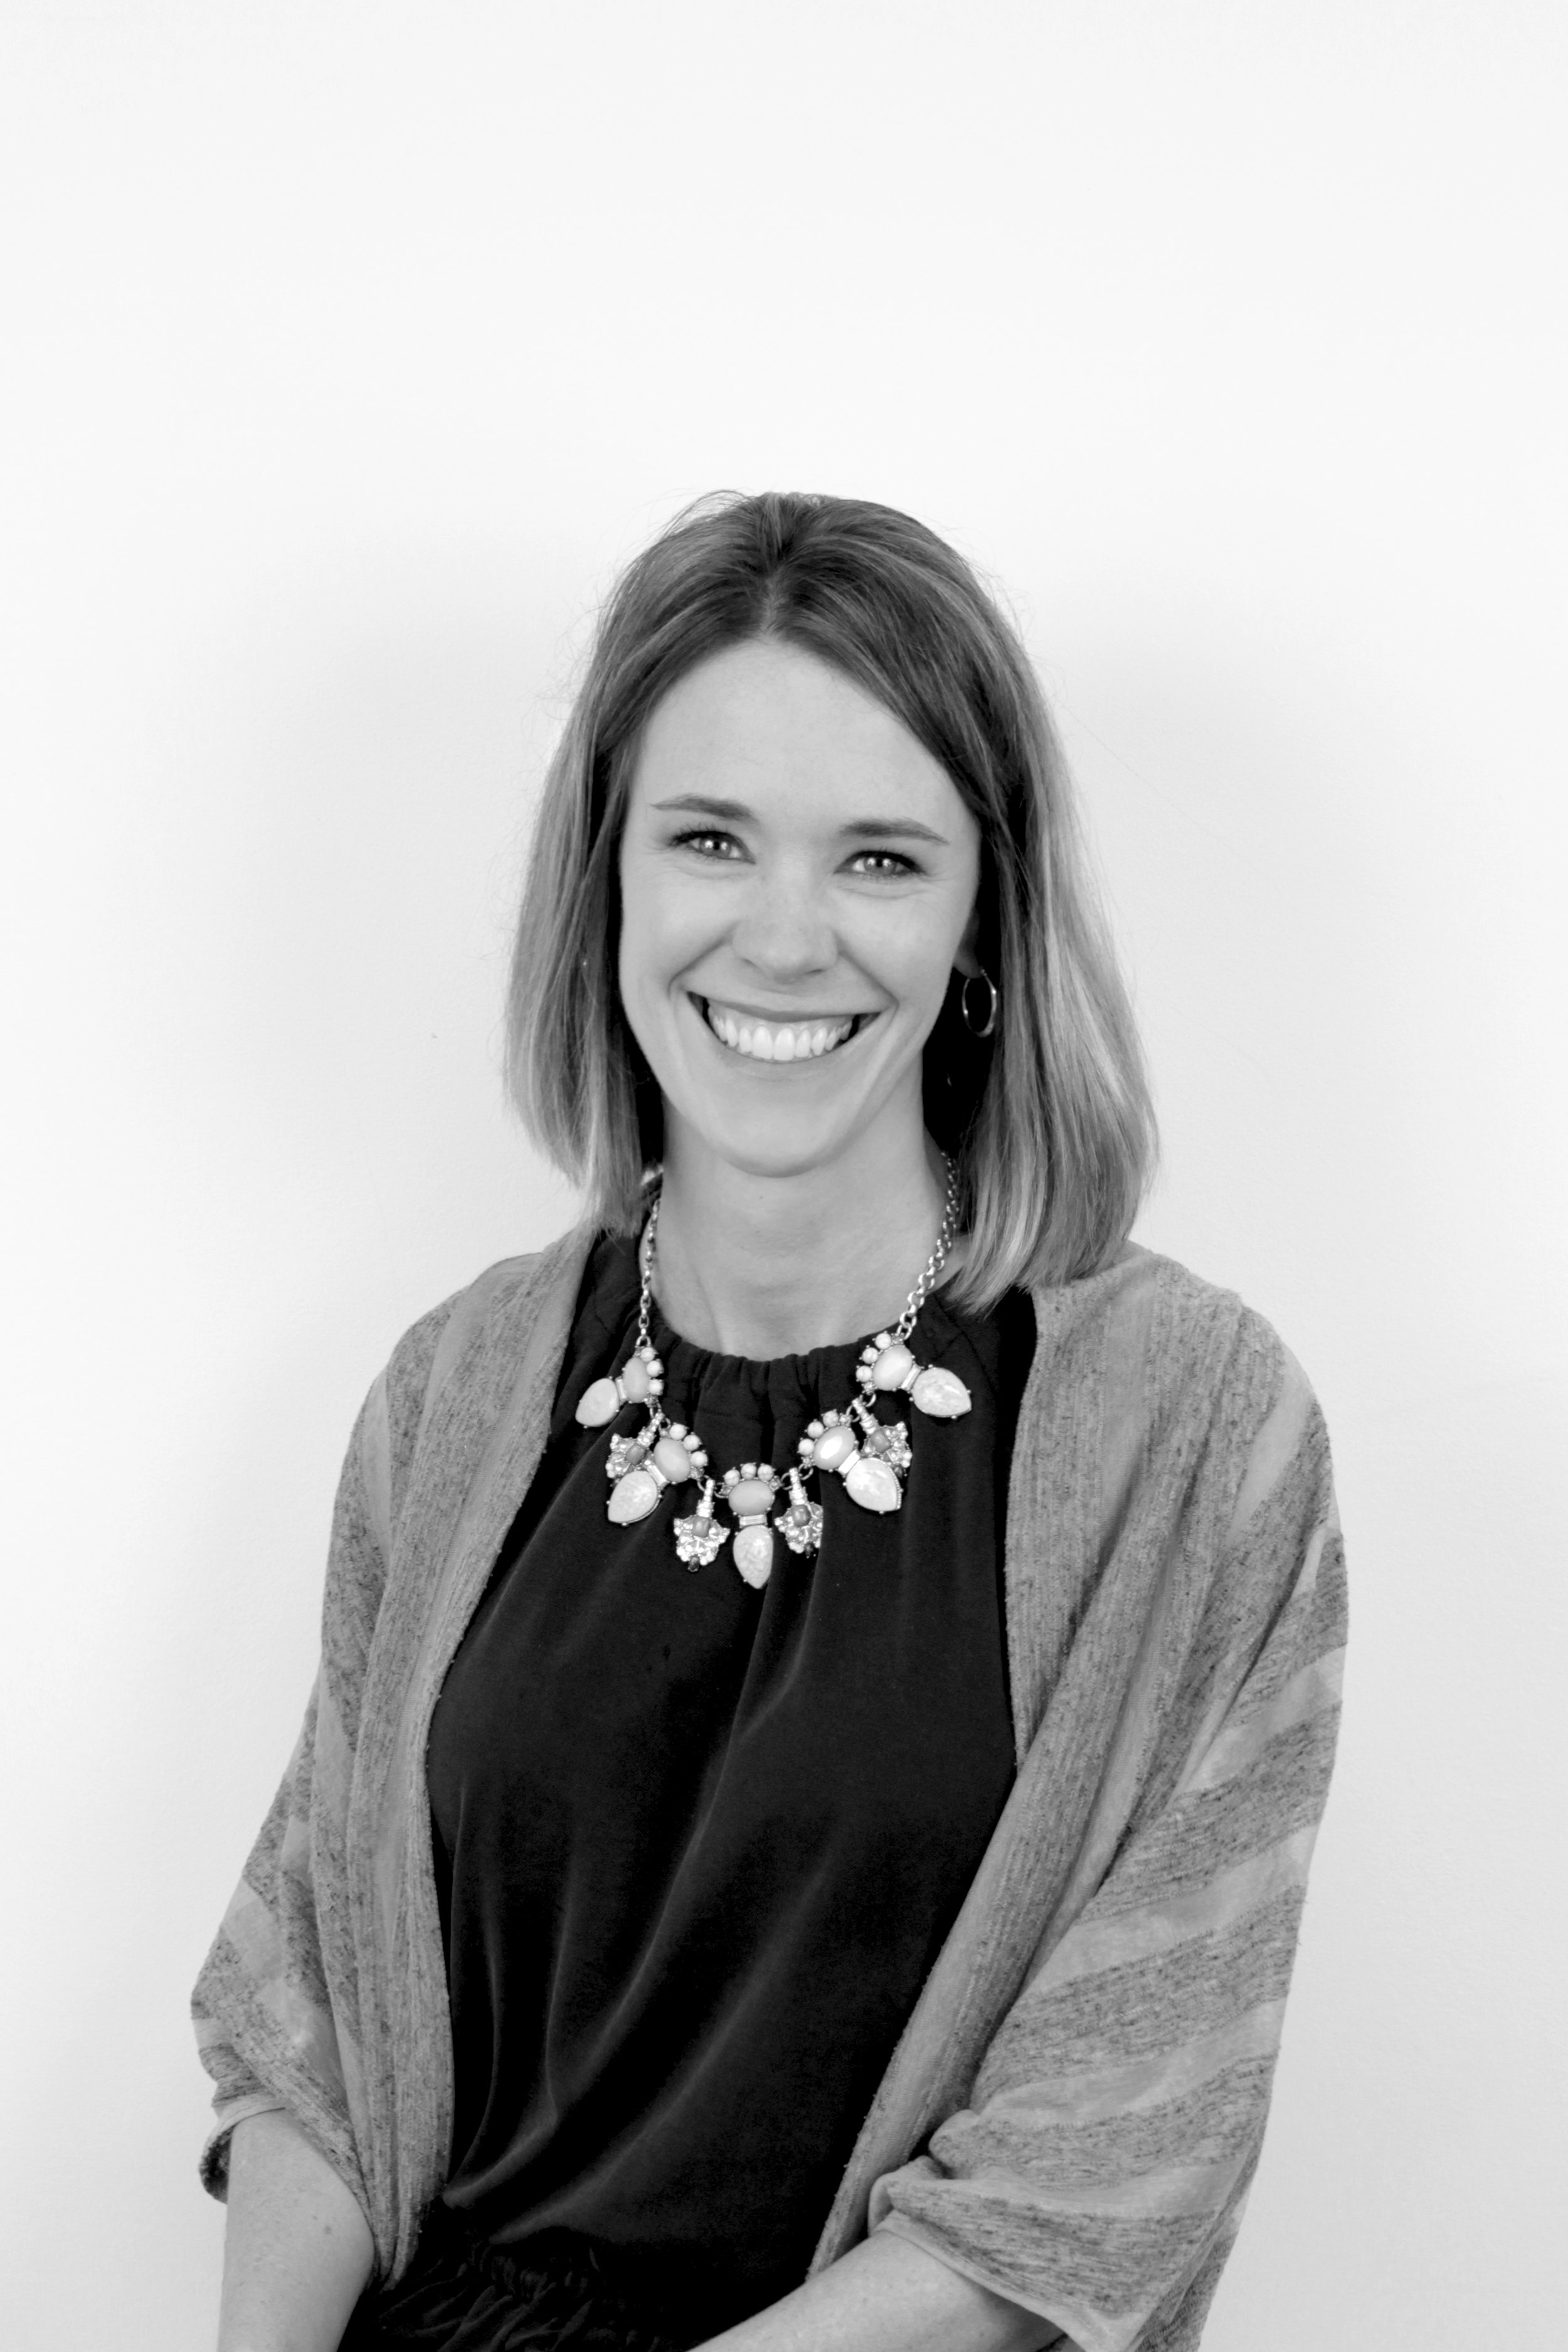 KELLY HARRISON | FINANCE MANAGER